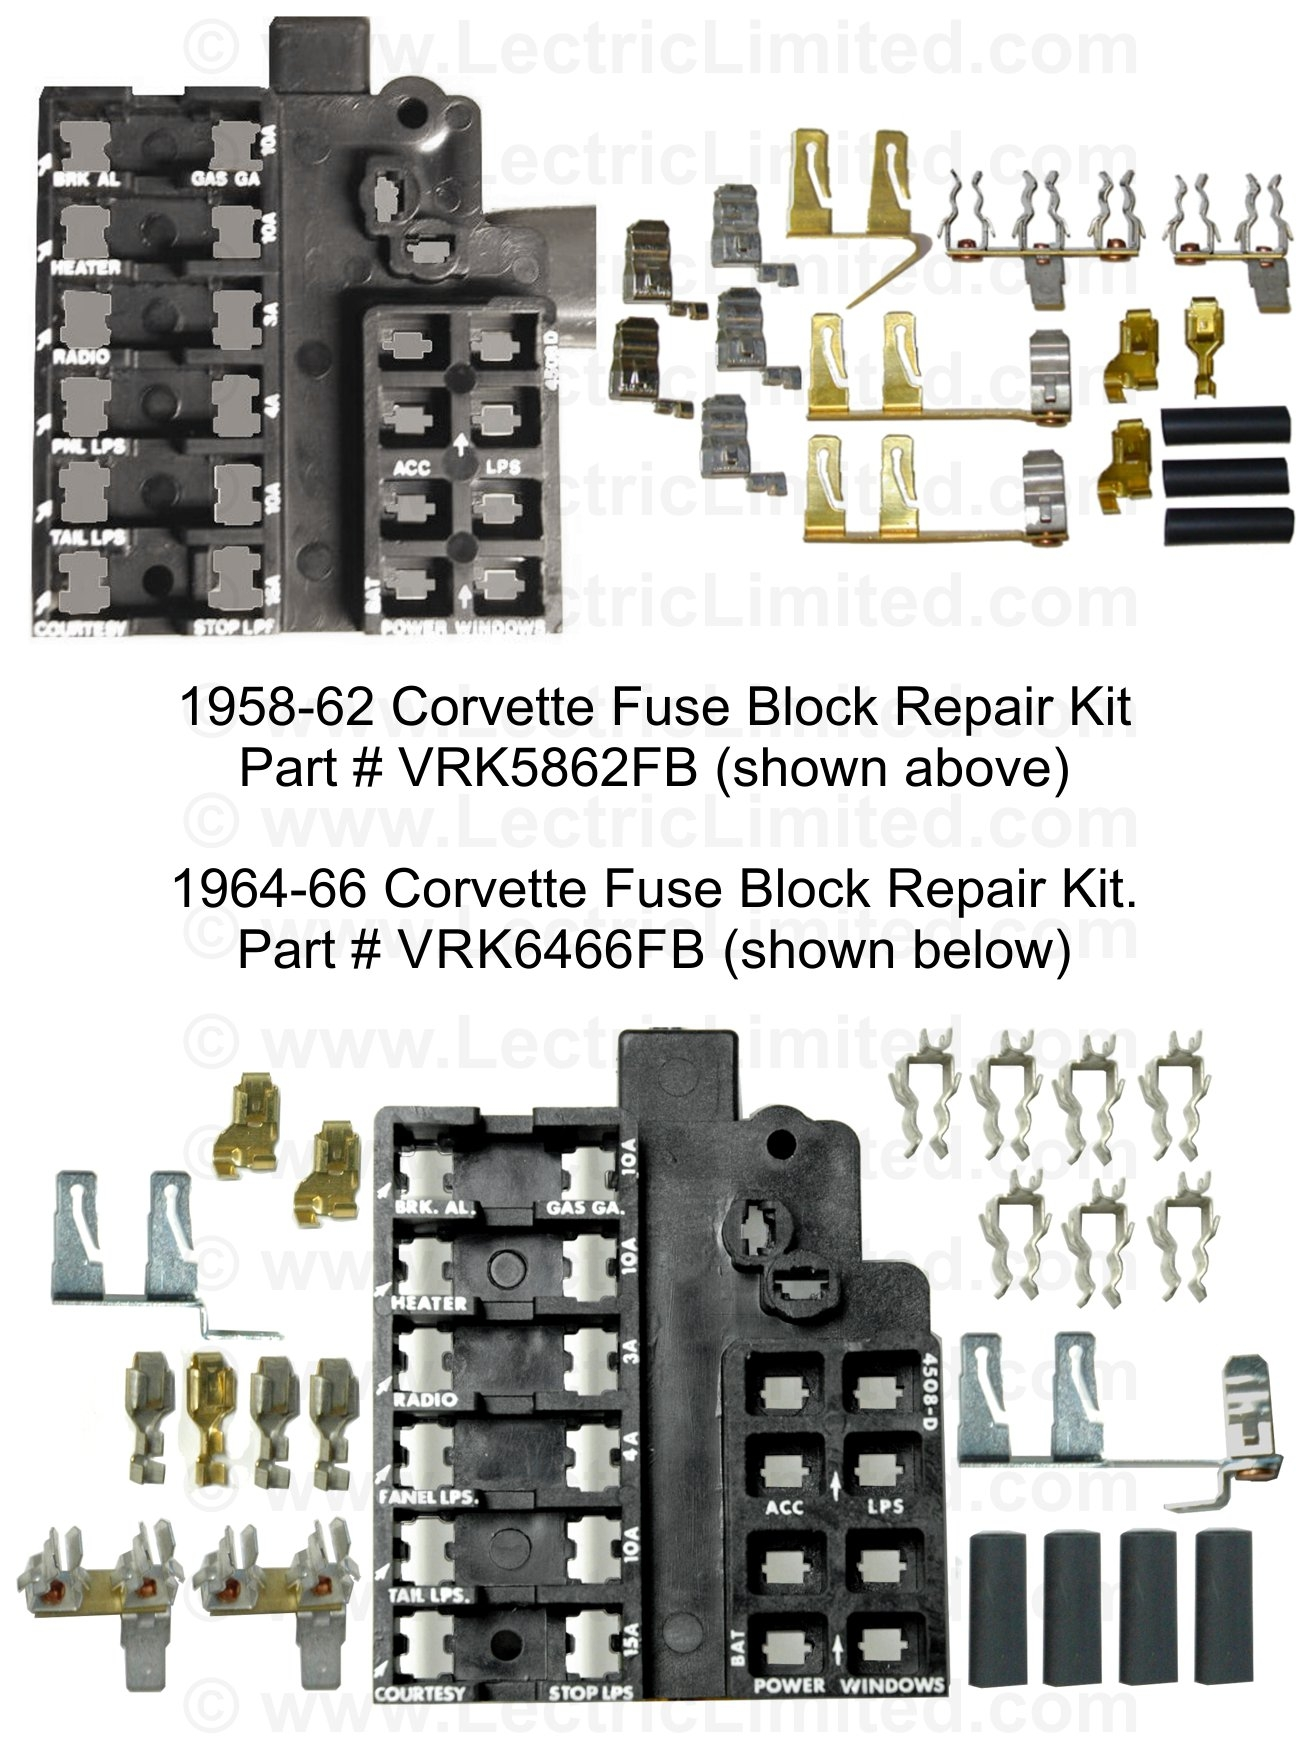 1966 Corvette Fuse Box Wiring Diagram Schematics 1978 El Camino Schematic Repair Components 2002